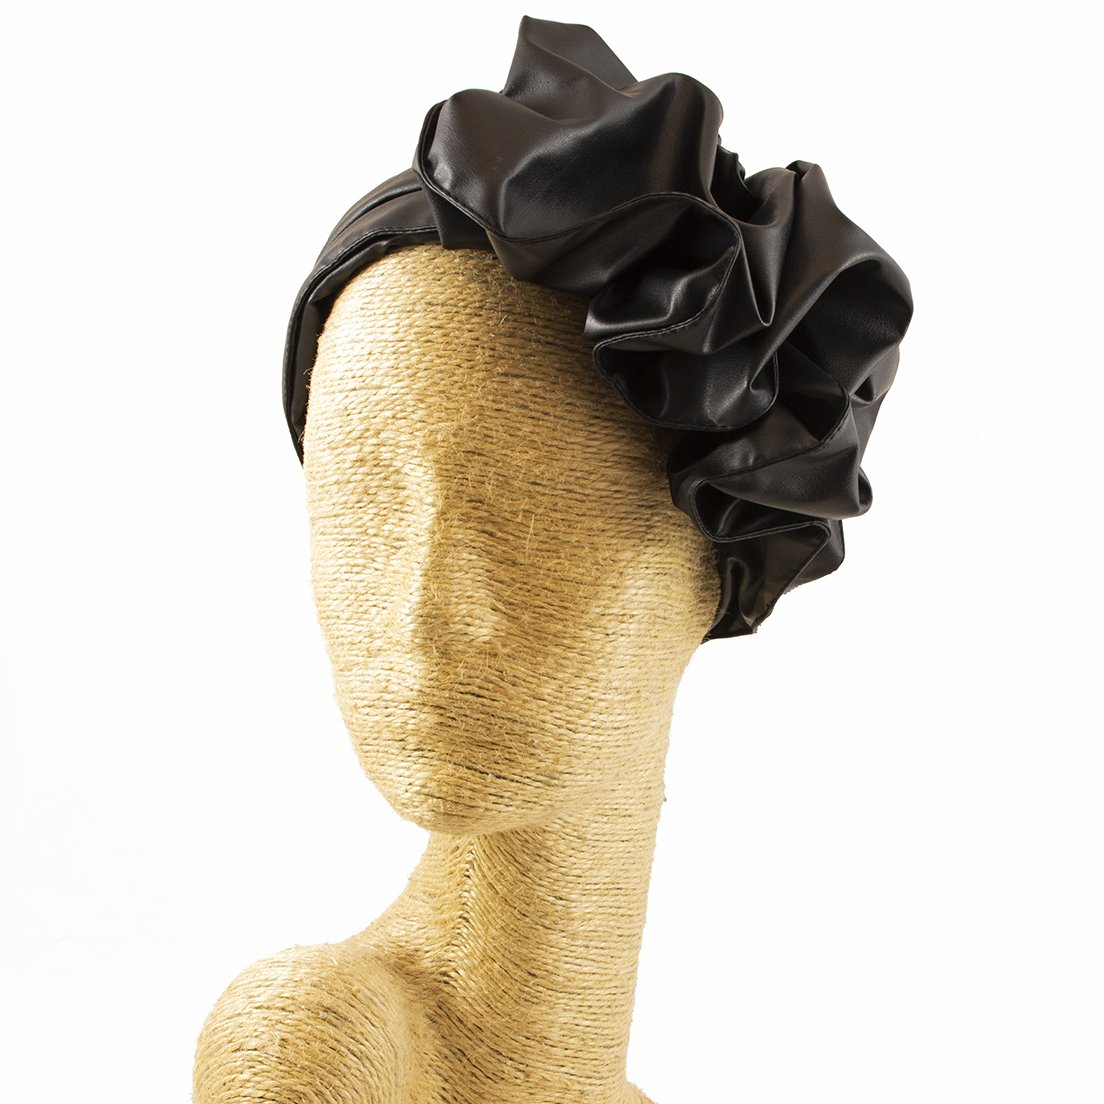 Fascinator, Black, Leather Headband, Milliner, Worldwide Free Shipment, Delivery in 2 Days, Customized Tailoring, Designer Fashion, Party Hat, Derby Hats, Gift Box